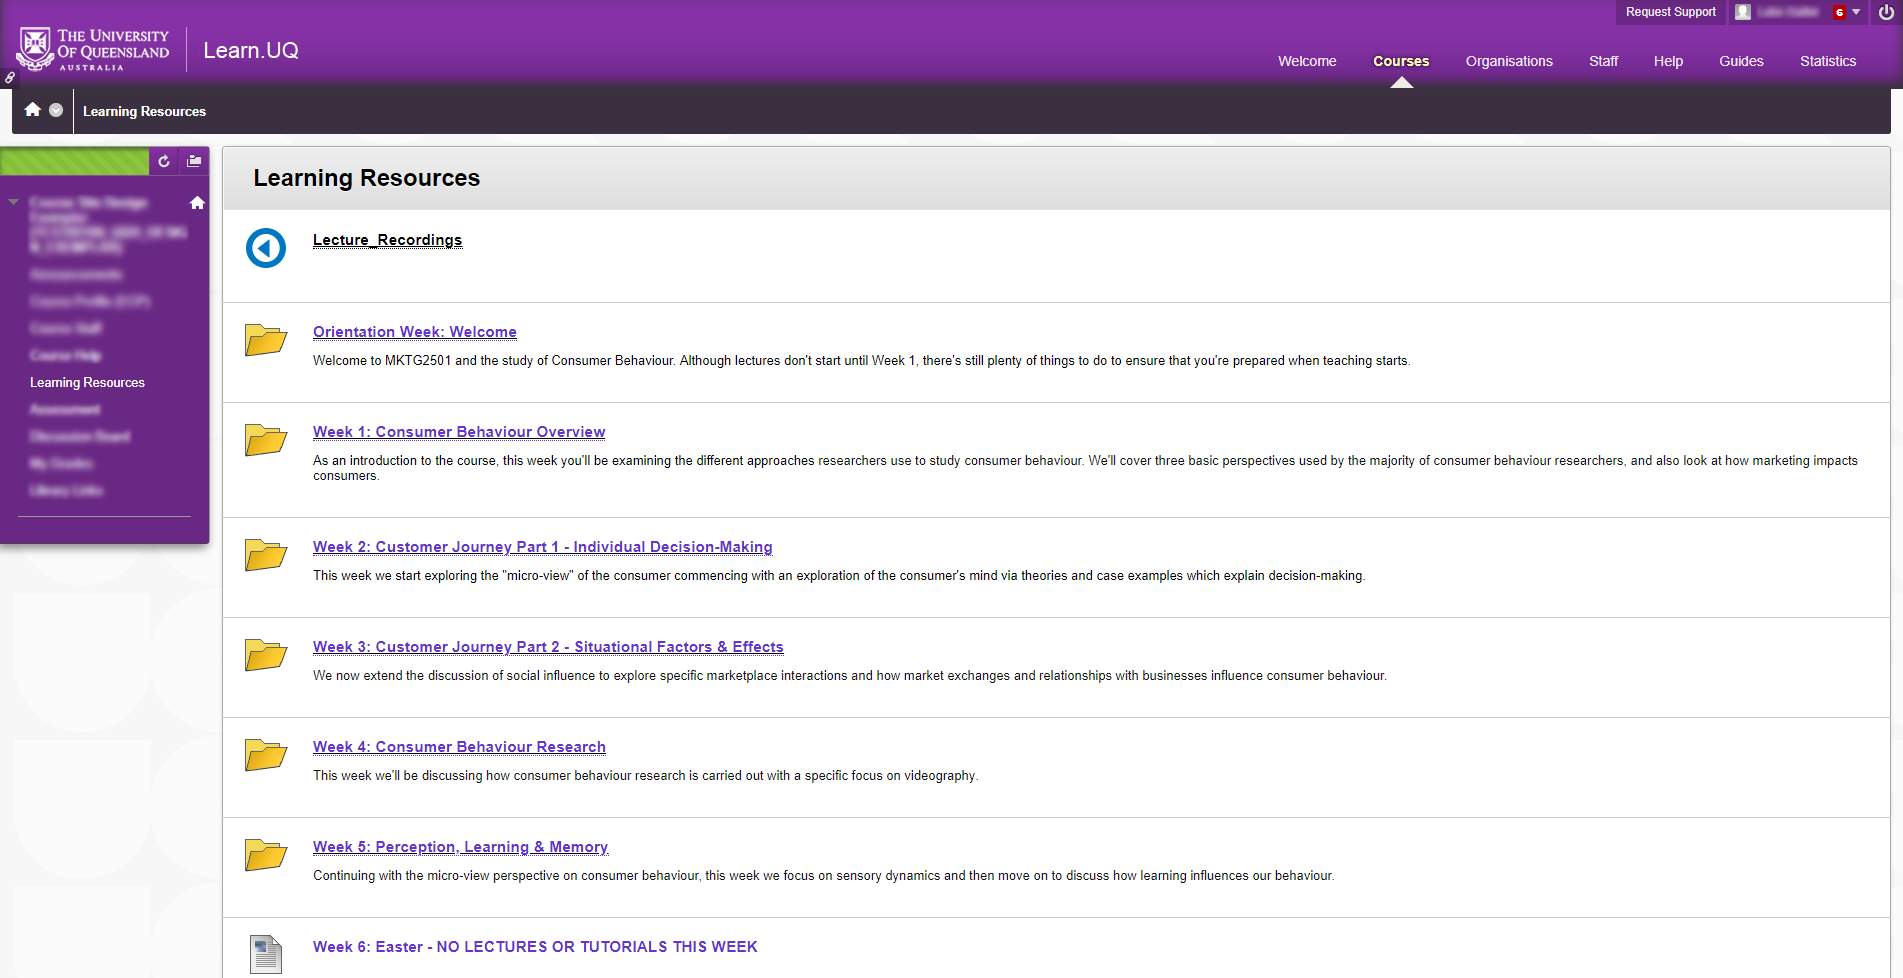 Screenshot of Learning Resources screen